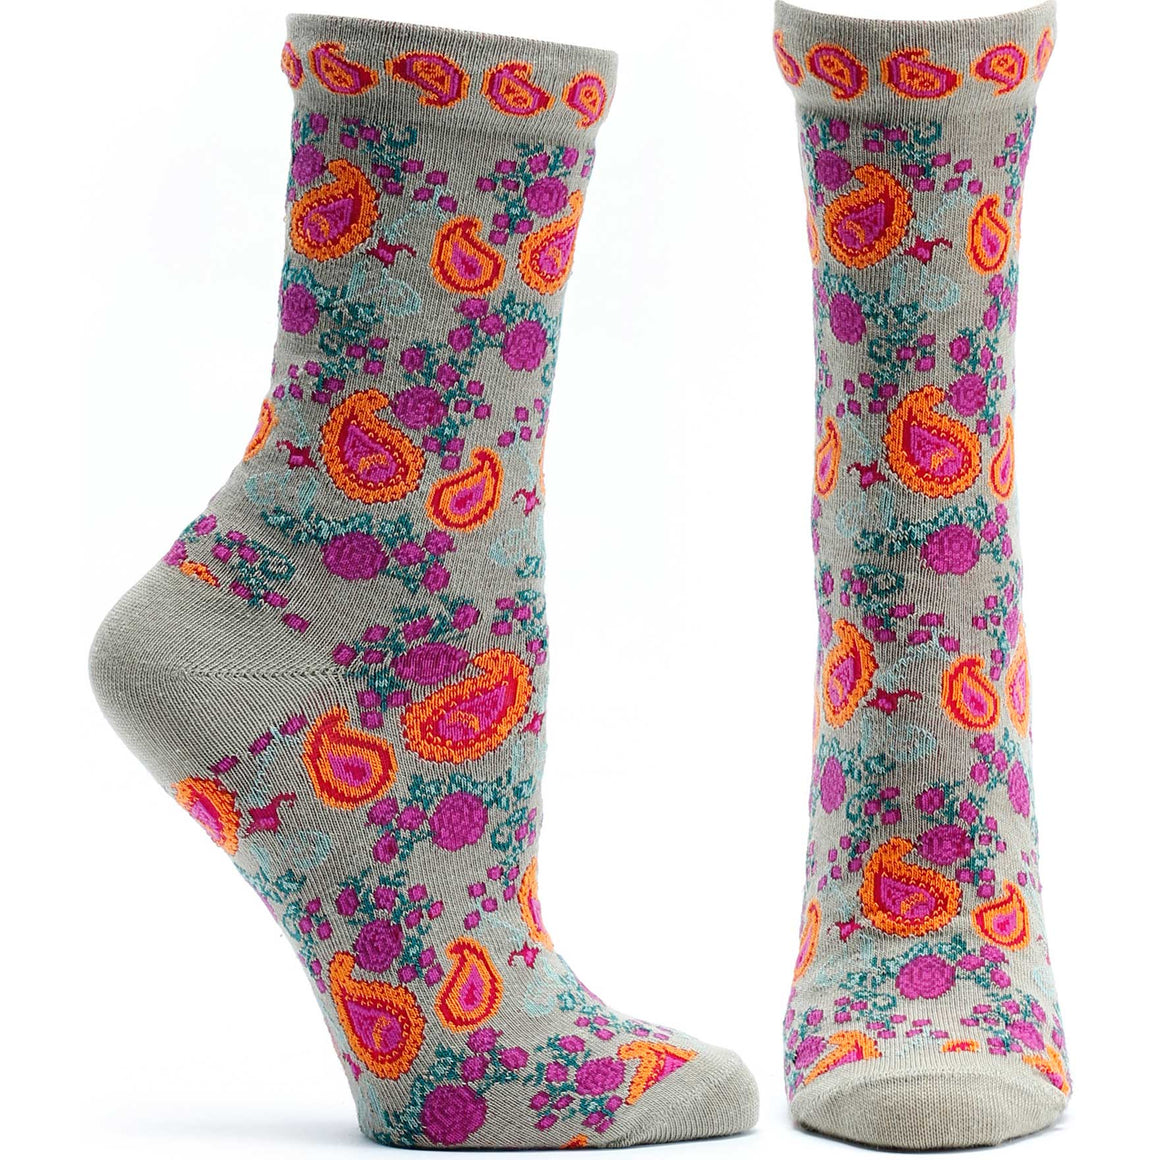 Flourishing Paisley Sock - Ozone Design Inc